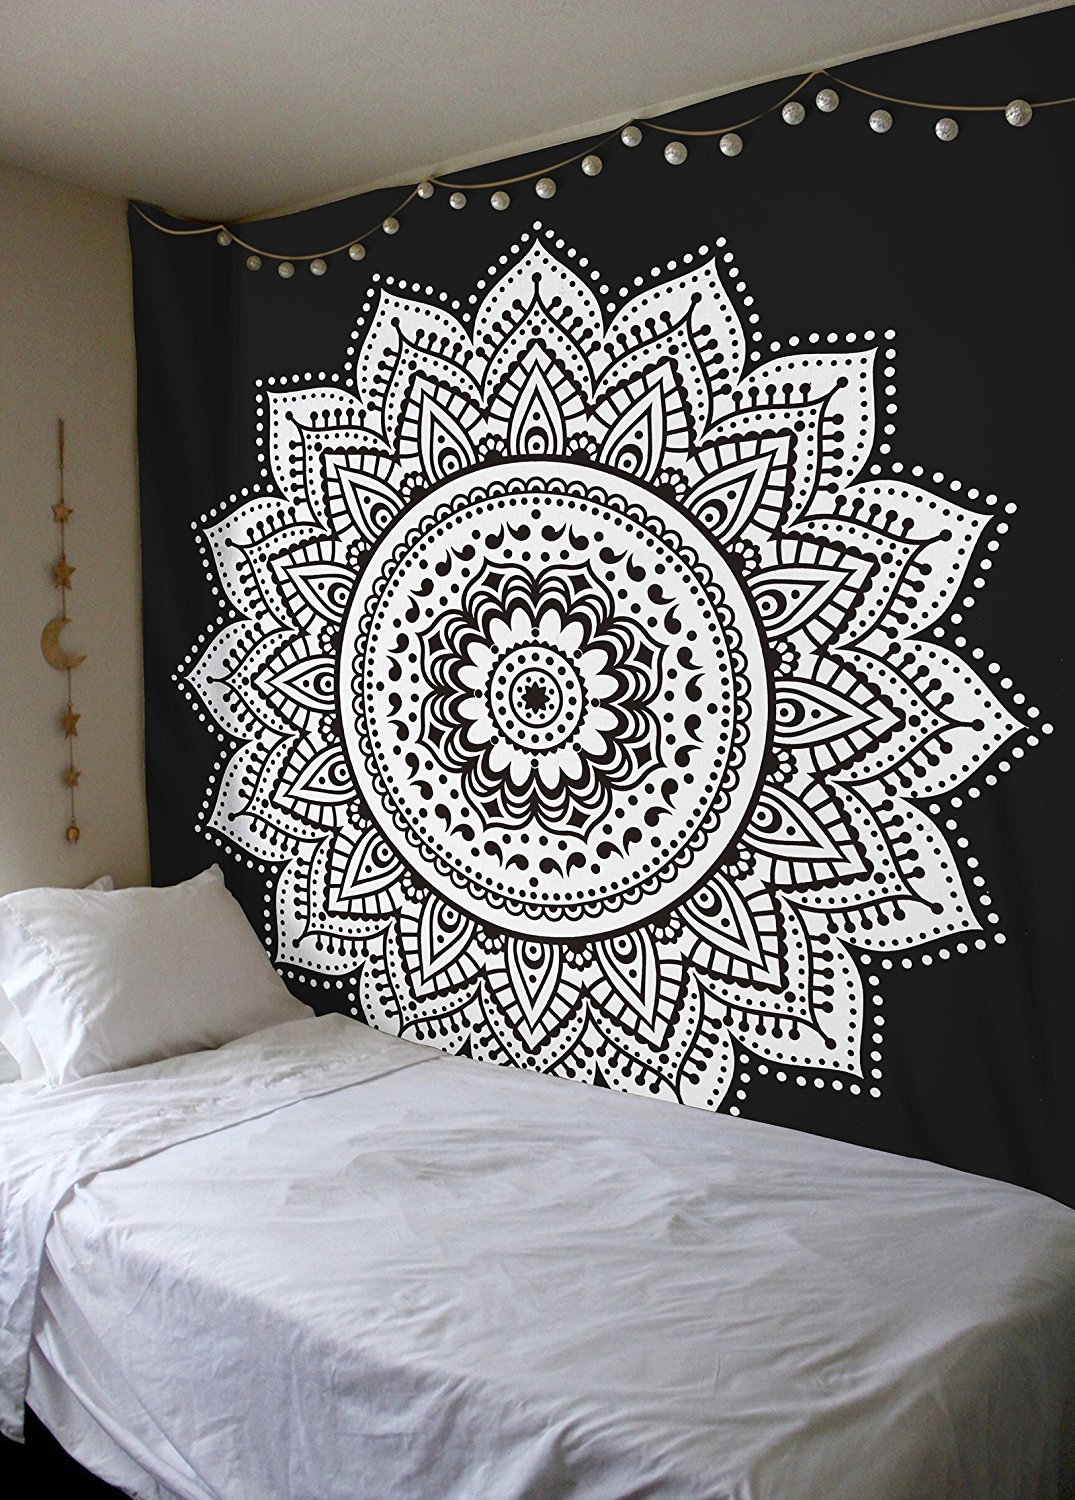 Ombre Mandala Tapestry - Black and White Indian/Hindu Wall Hanging - 100% Cotton - Bohemian Wall Decor by RawyalCrafts SYNCHKG104633